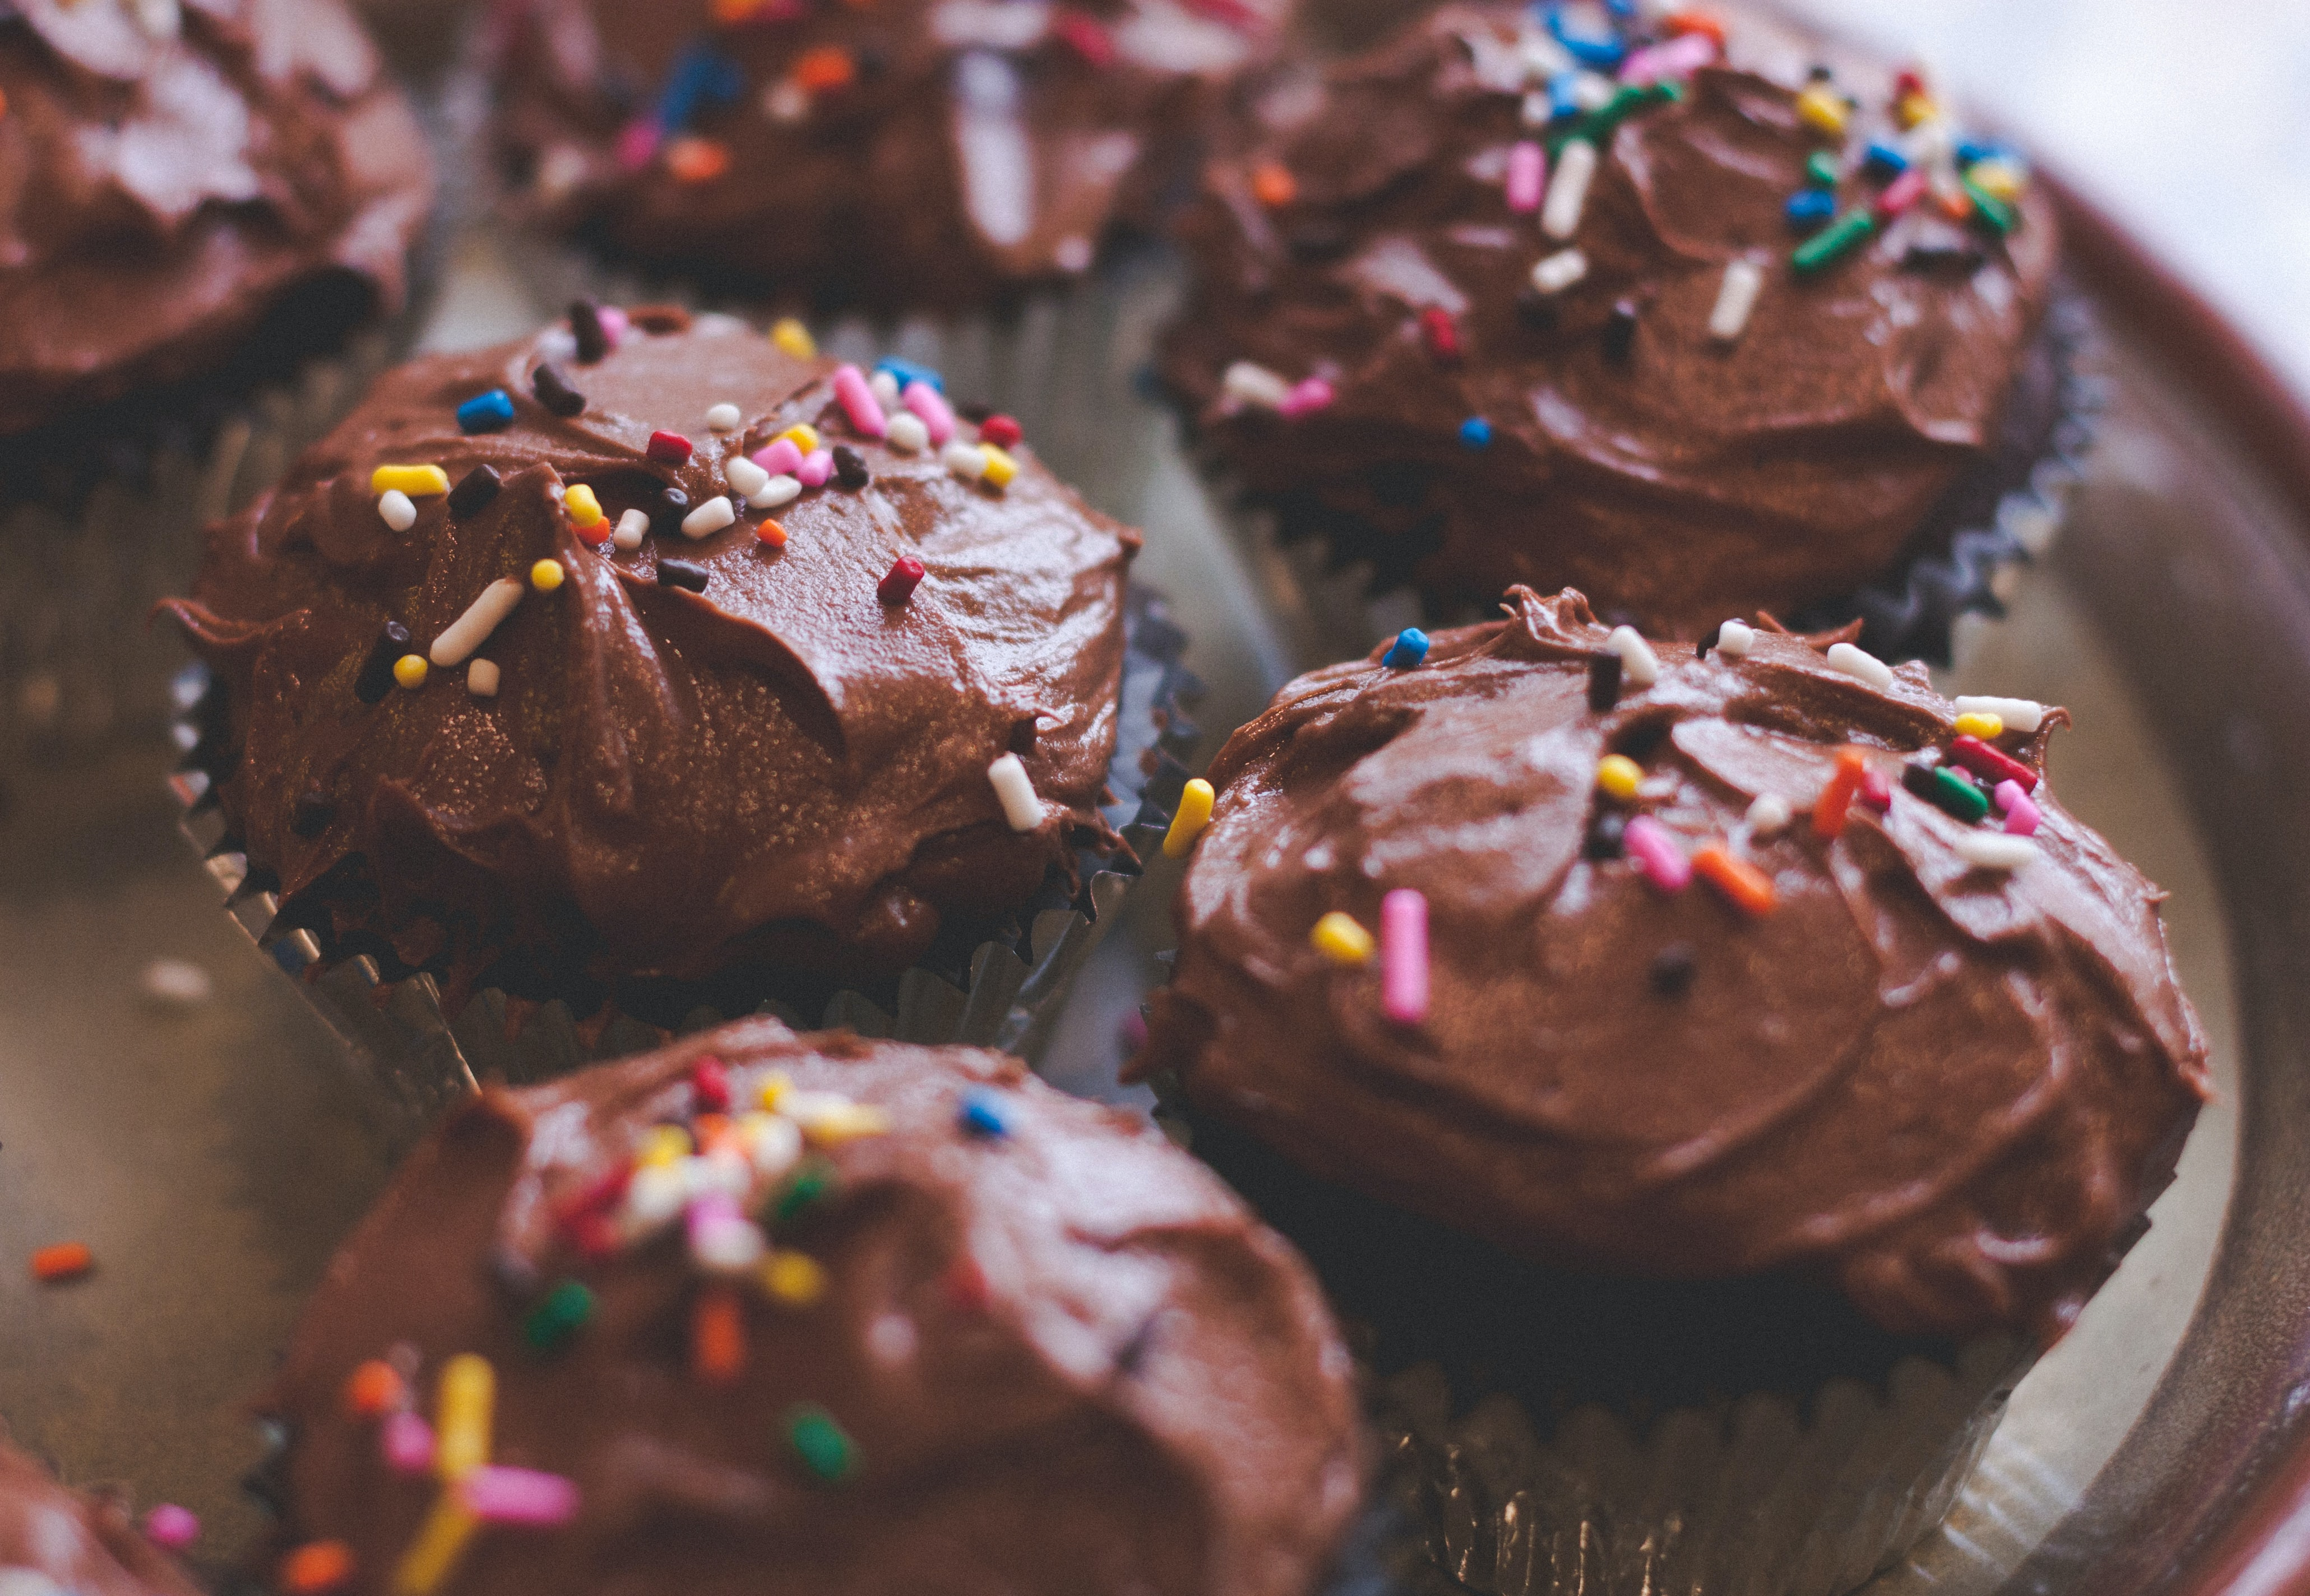 Homemade chocolate cupcakes with chocolate frosting and rainbow sprinkles